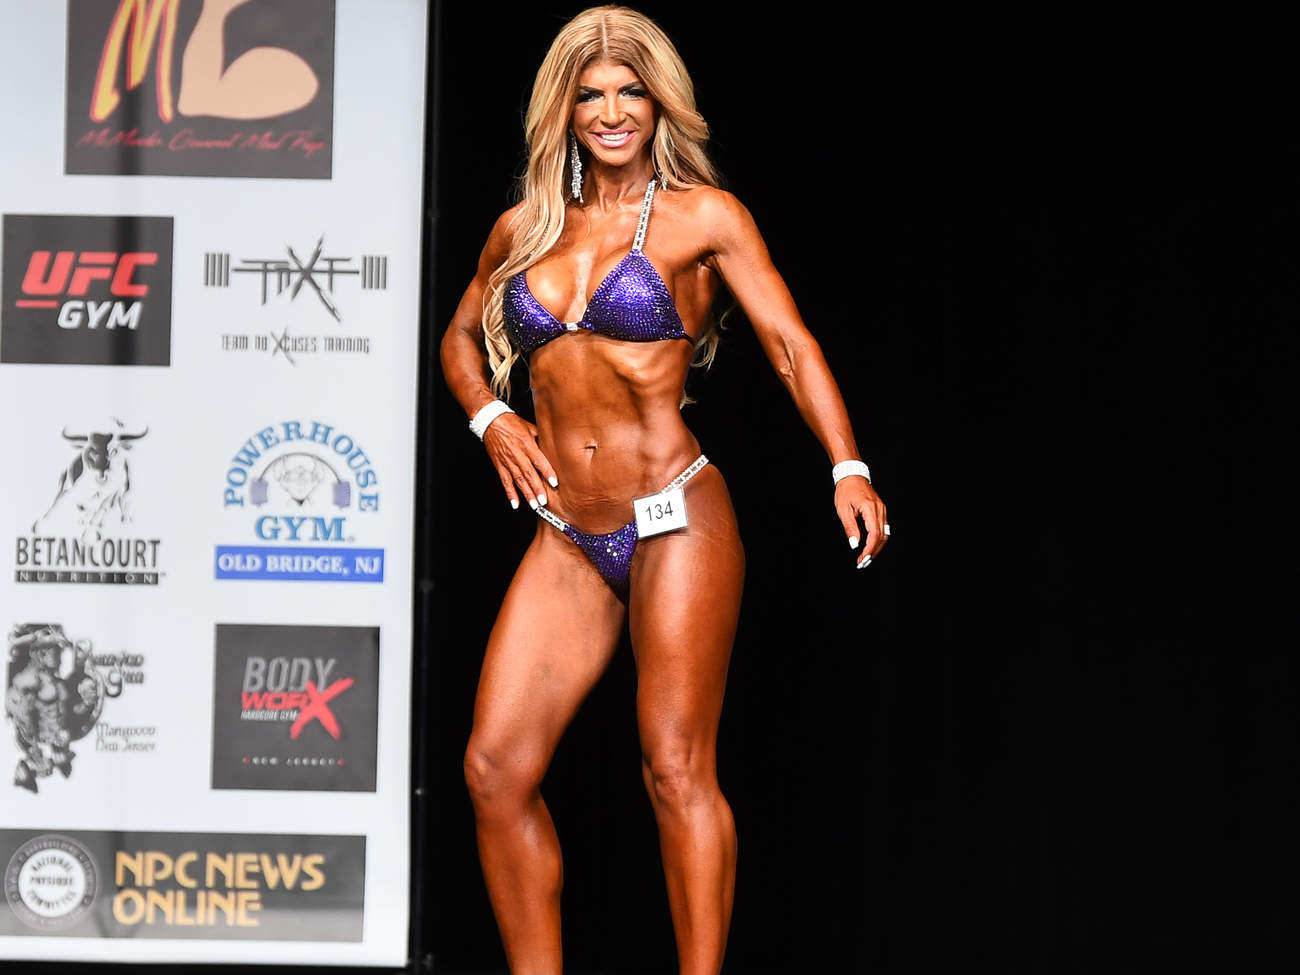 teresa-giudice-body-building